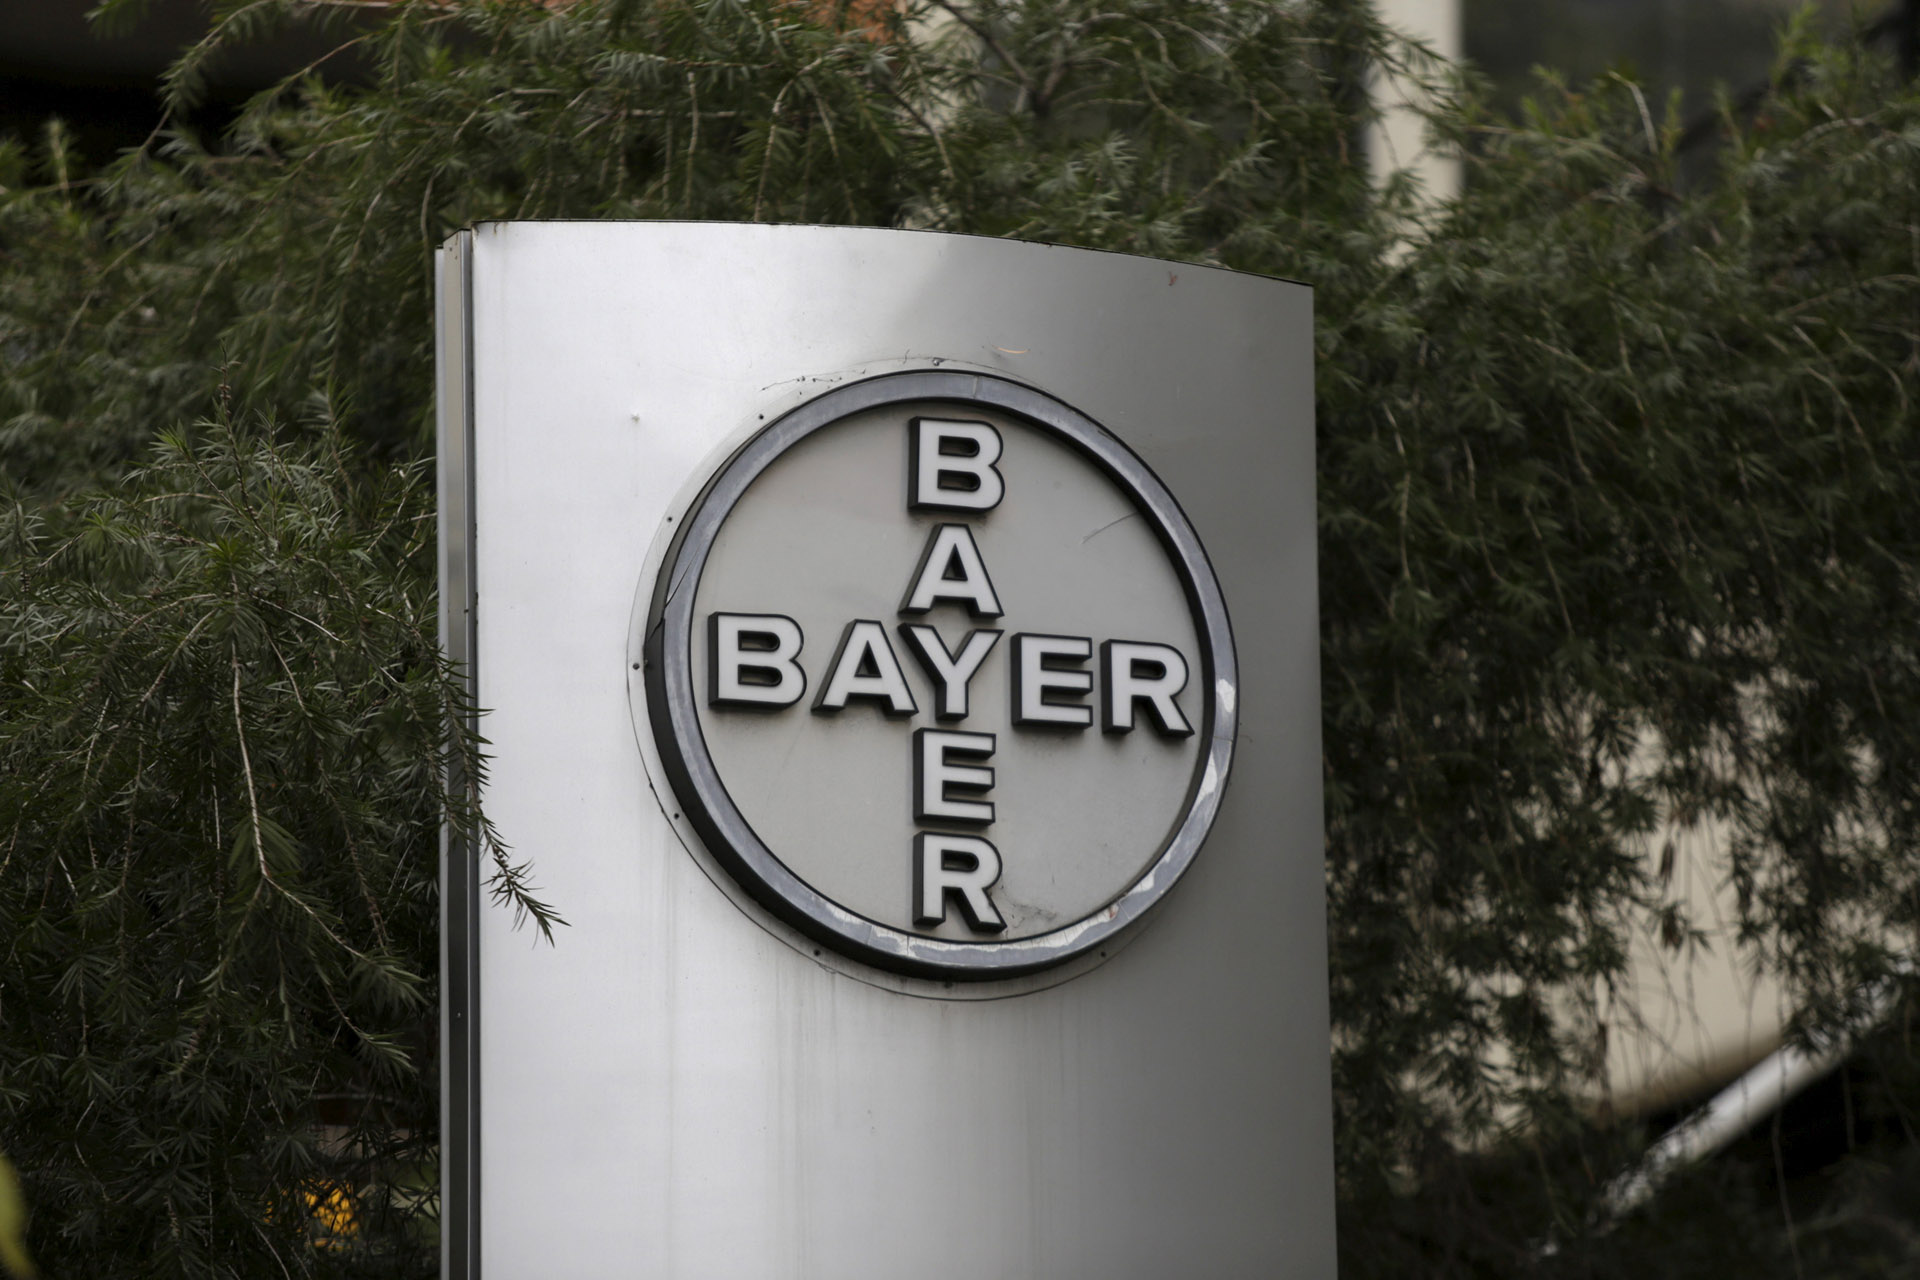 Bayer interesado en Monsanto